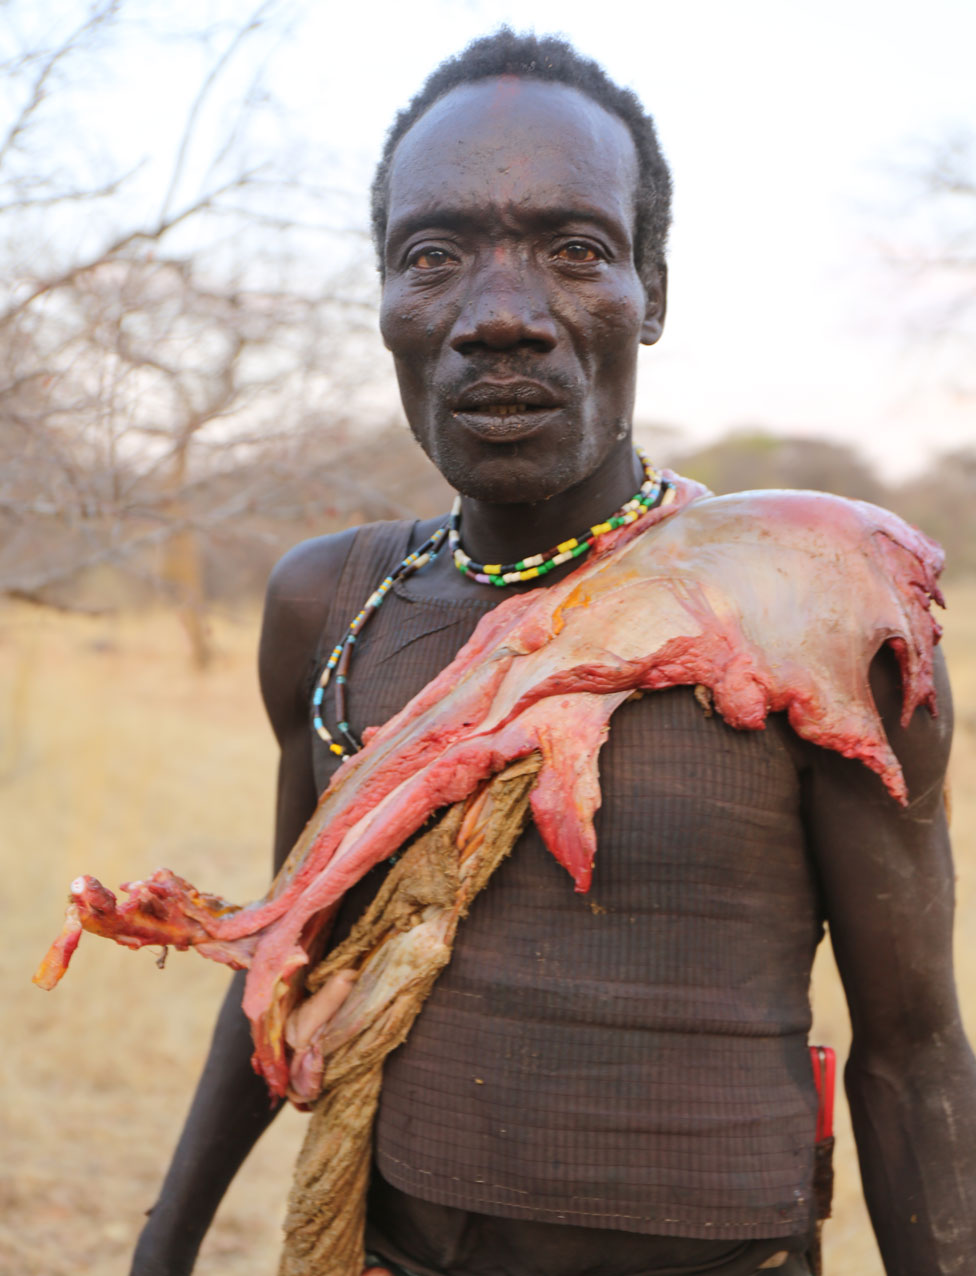 Hadza man carrying meat